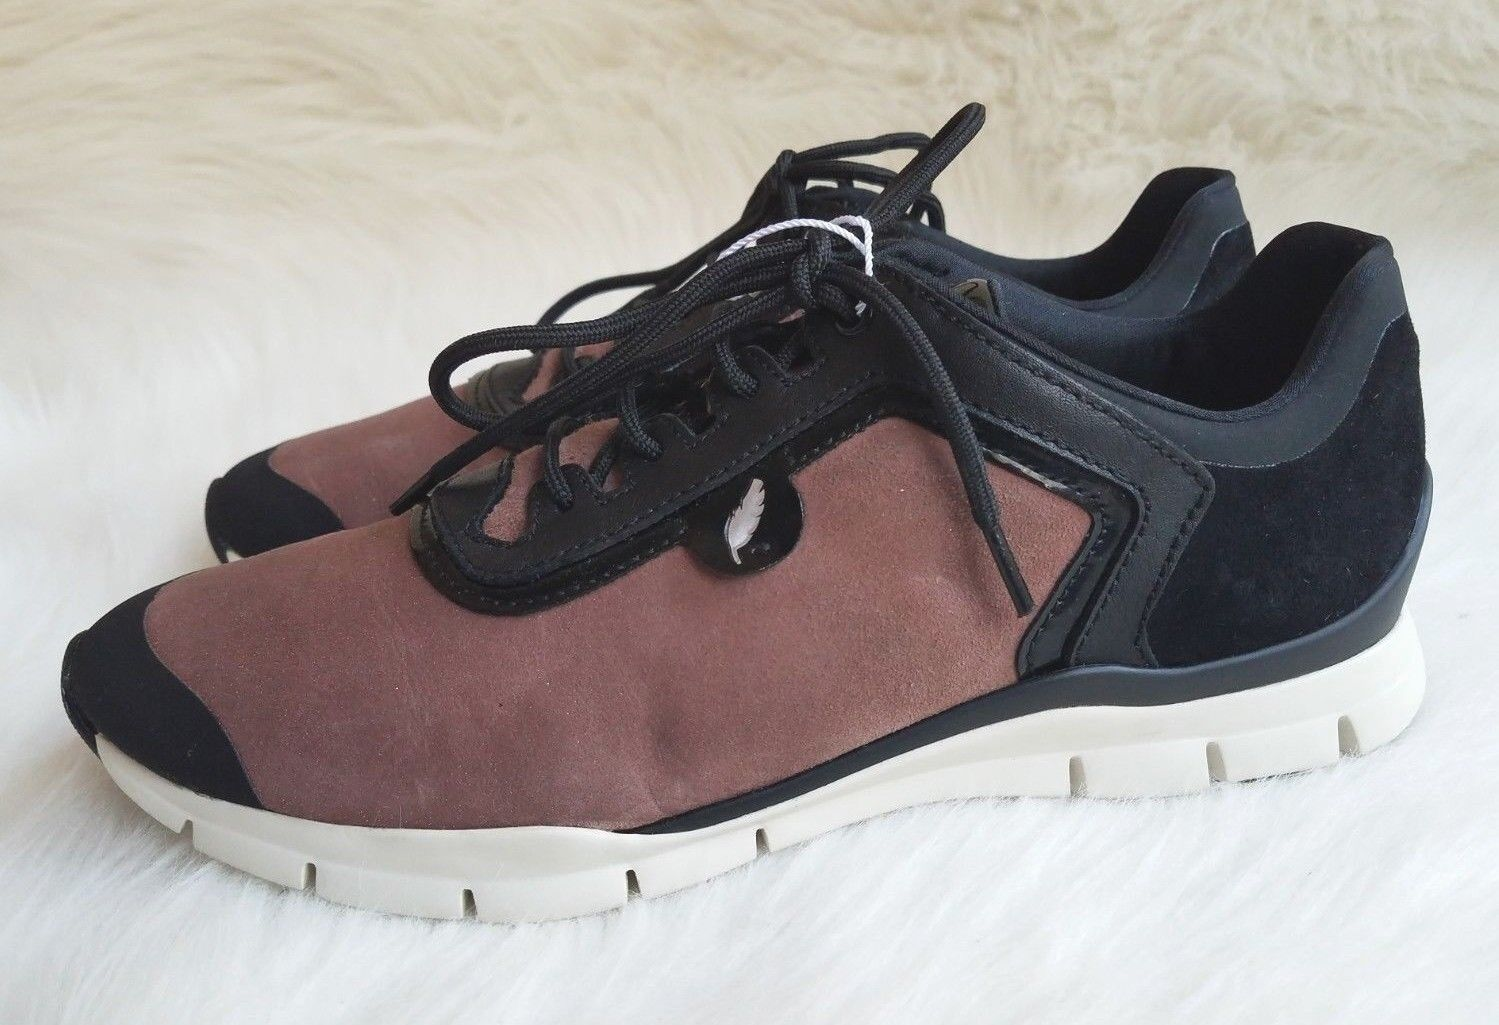 NWOB Donna  Geox 'Sukie' Old rosa nero Leather Leather Leather Lace Up Trainers scarpe Sz 8 cb9507